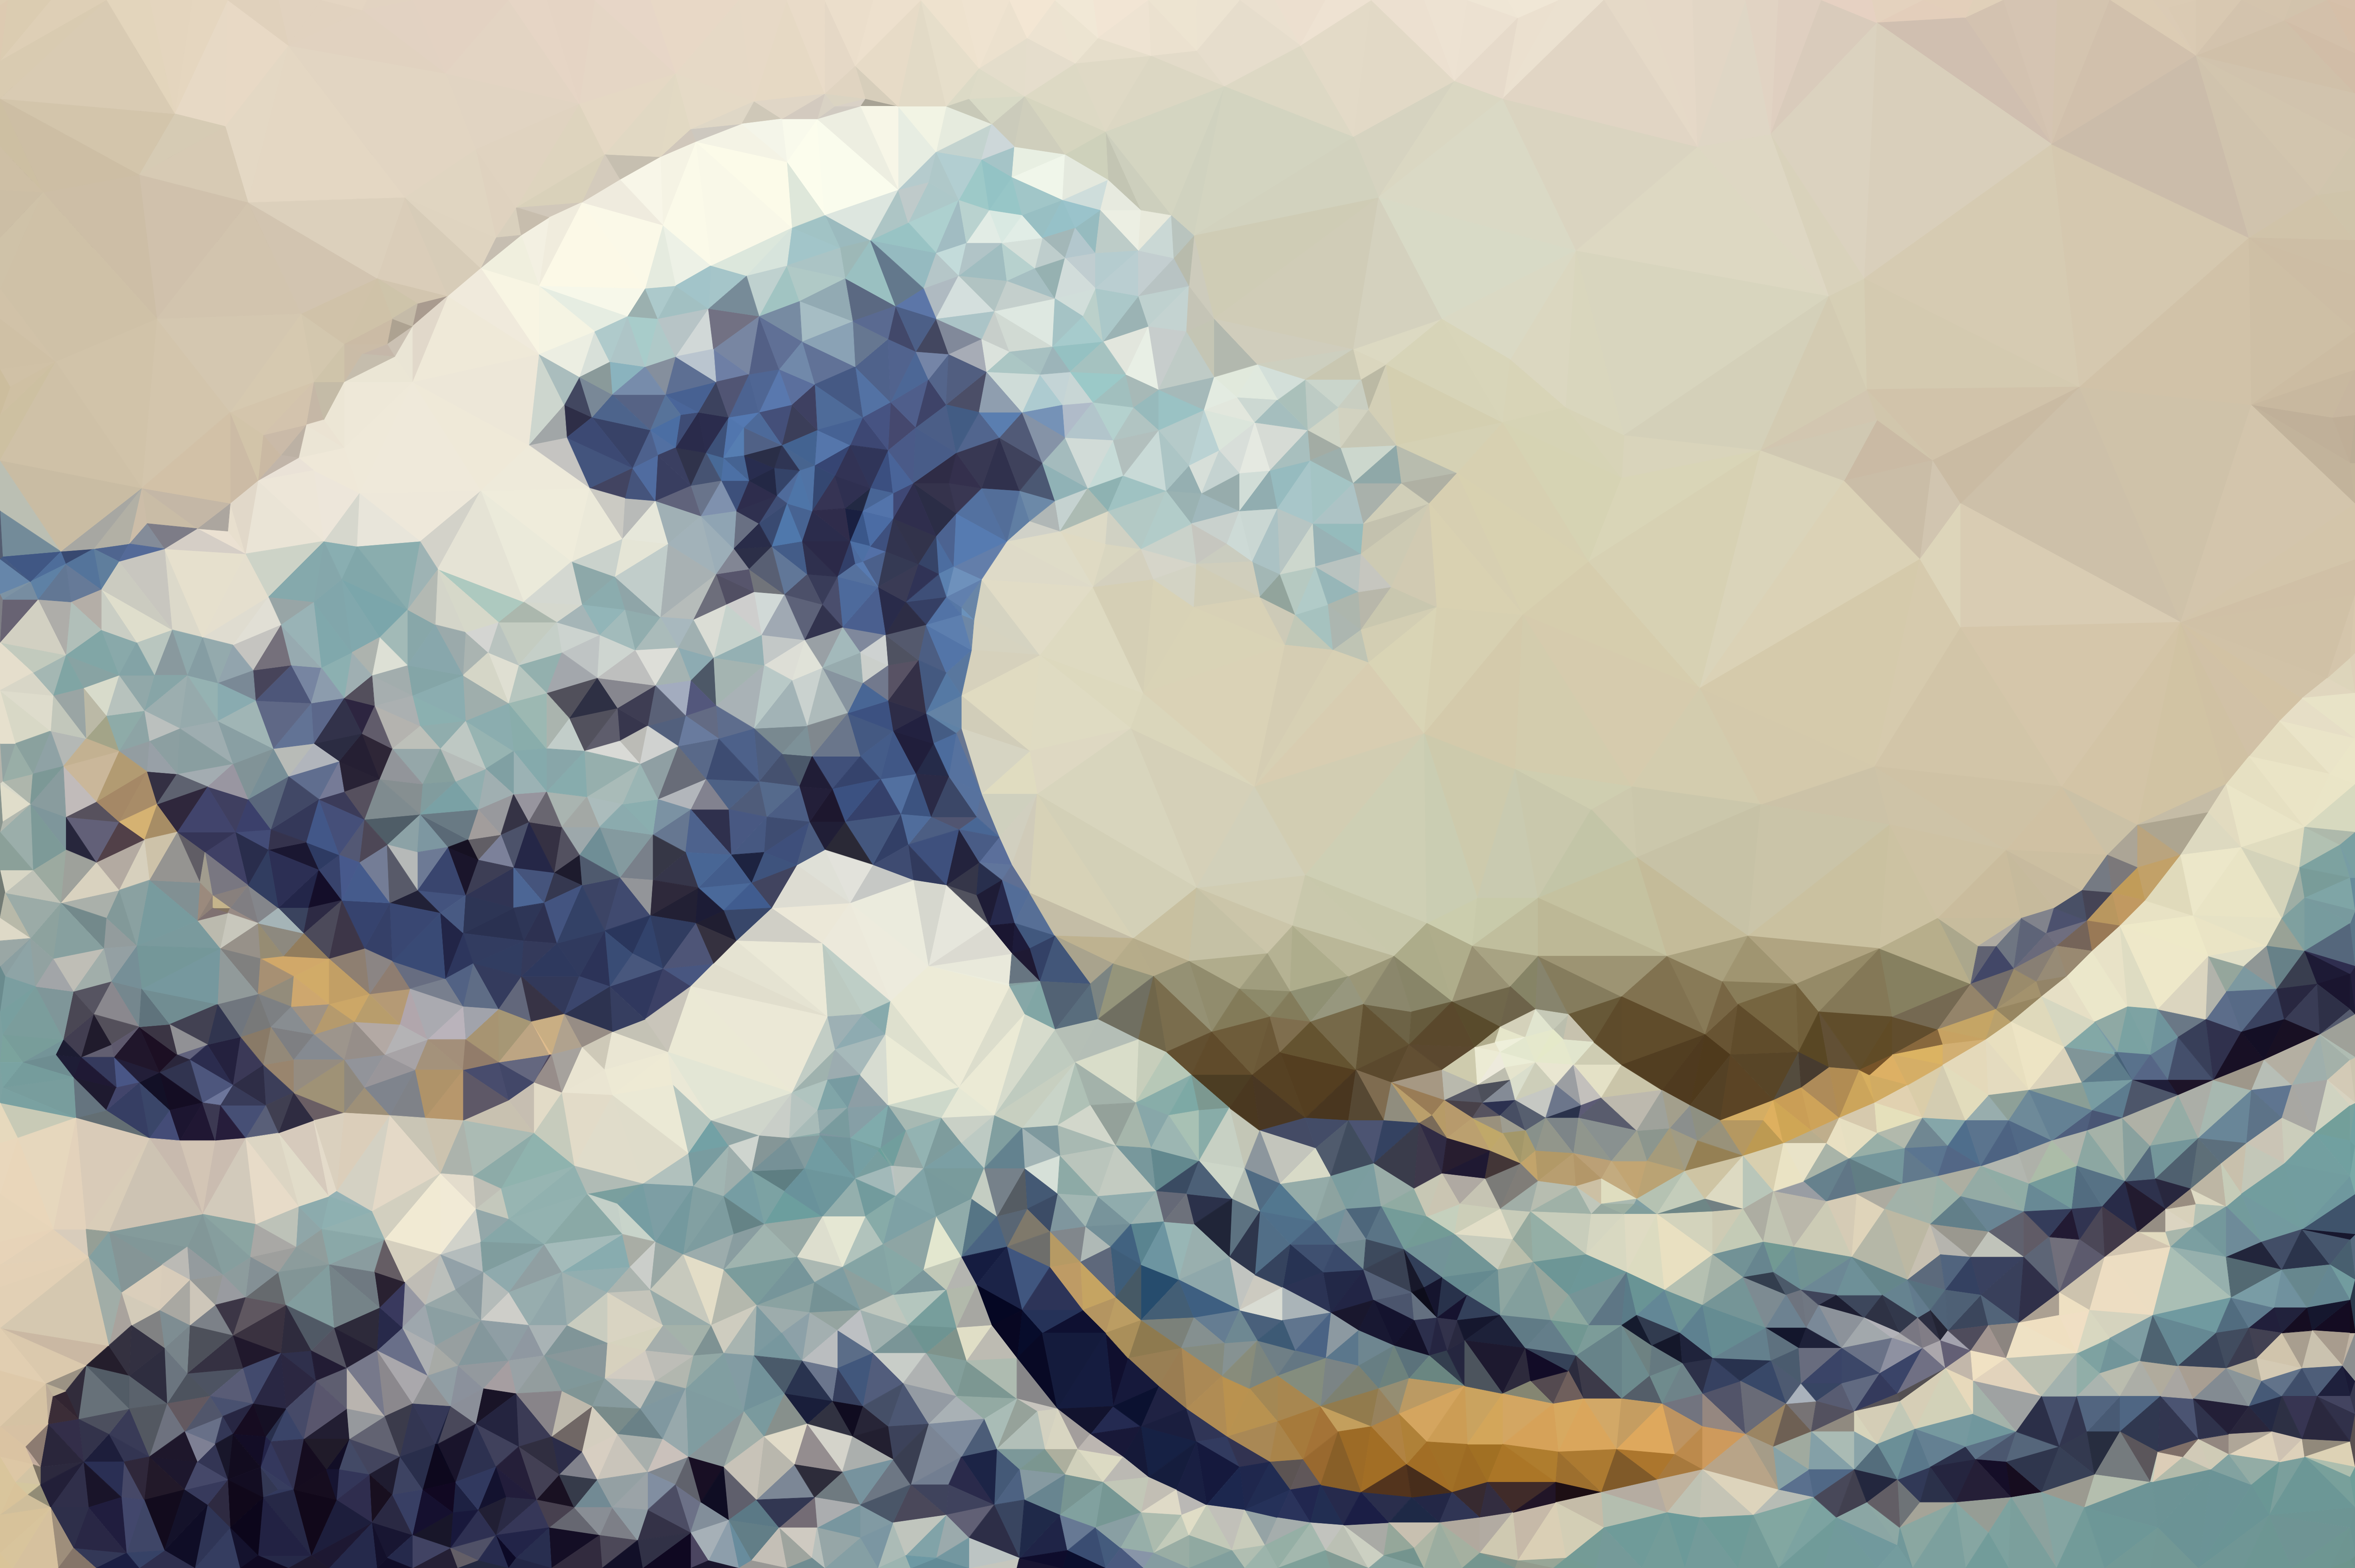 Poly Art of The Great Wave